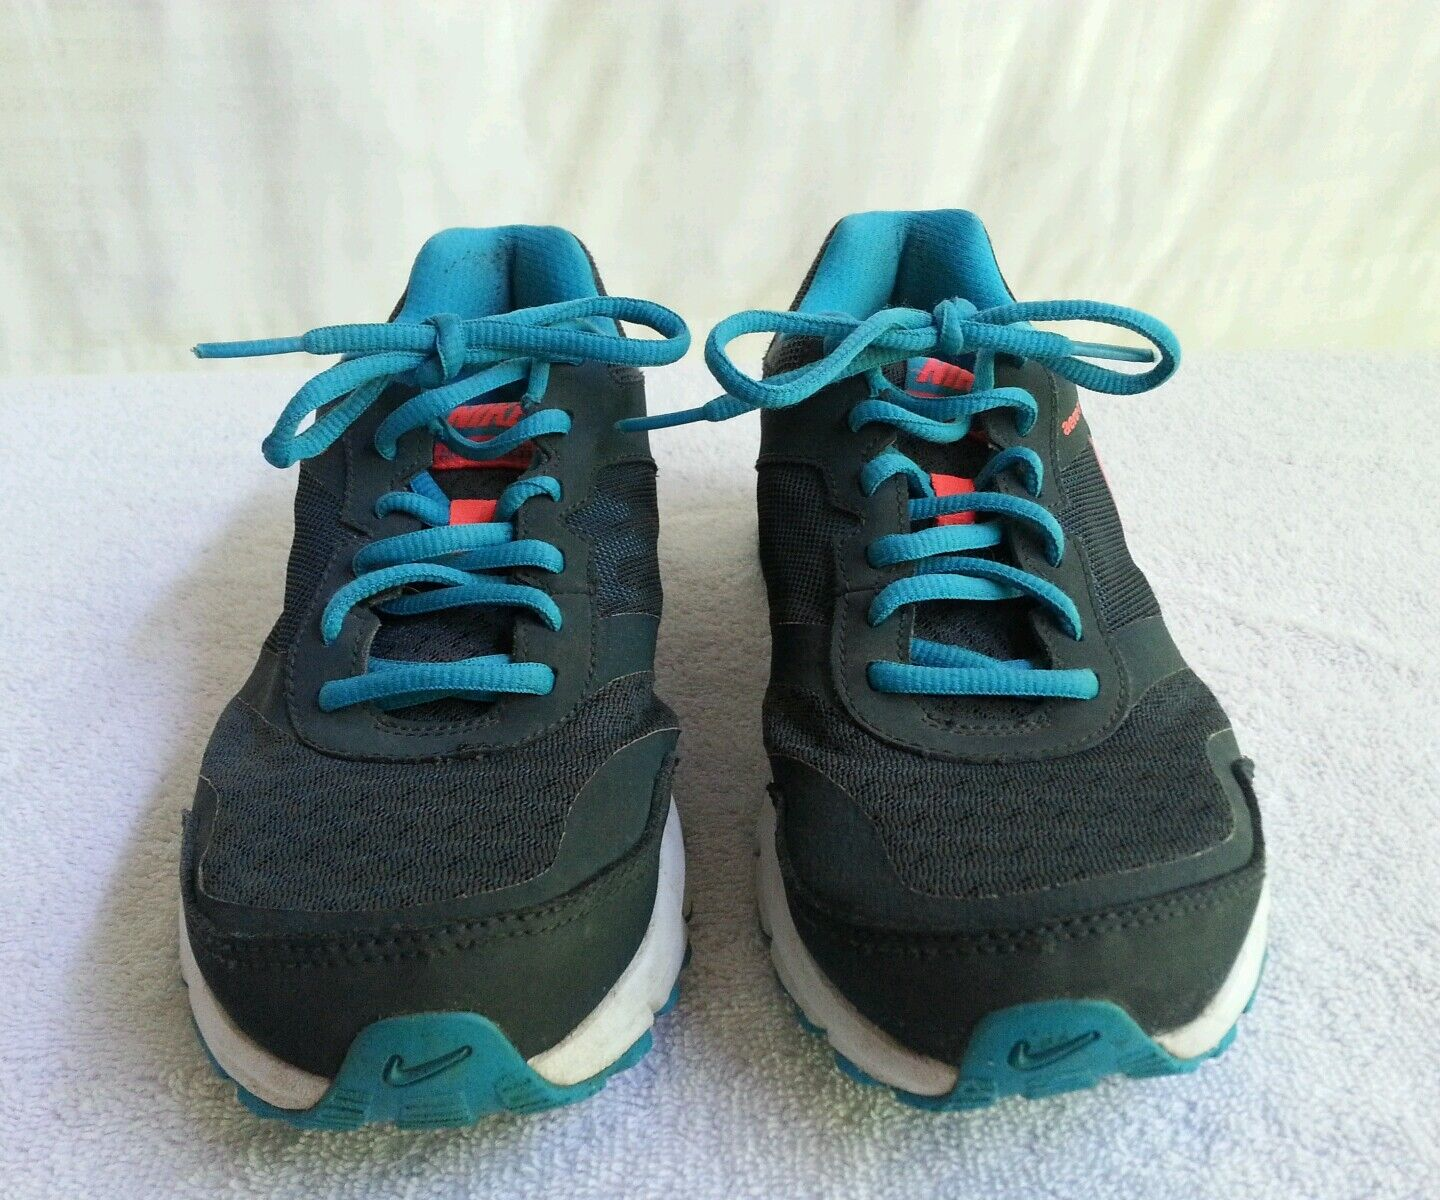 Nike Air Women's running shoes sz 8